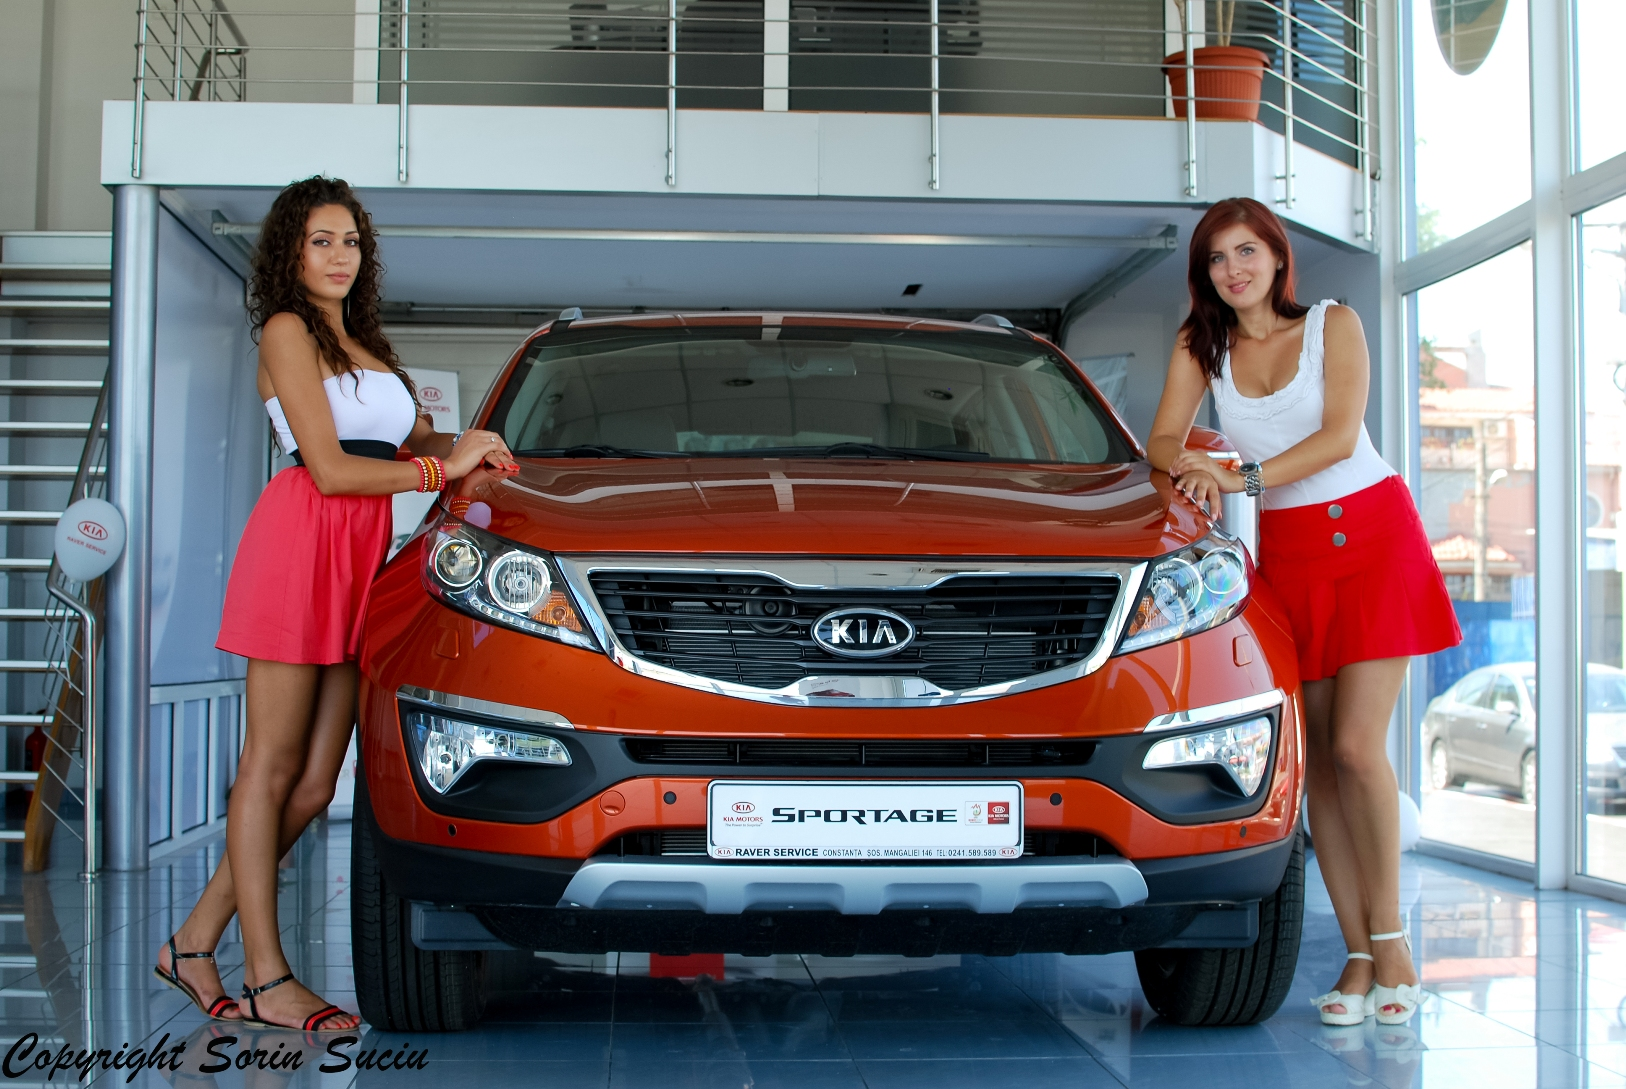 Hostess+Evenimente+-Showroom+Kia+2012+(4).JPG